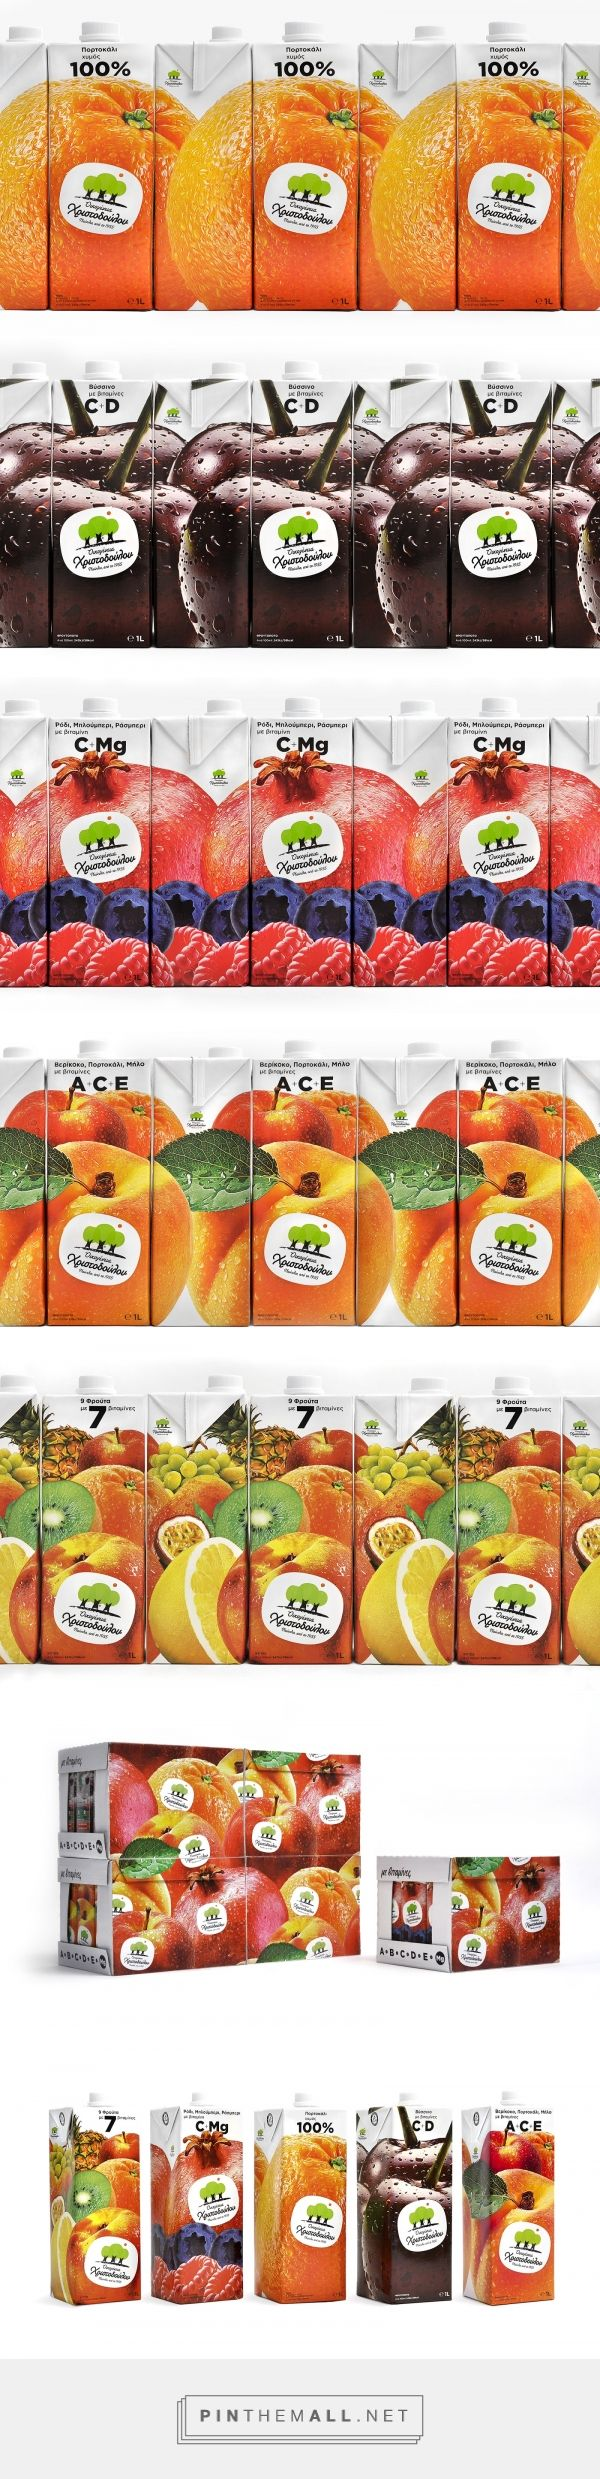 Vitamin Juices packaging design by k2design - http://www.packagingoftheworld.com/2017/06/vitamin-juices.html